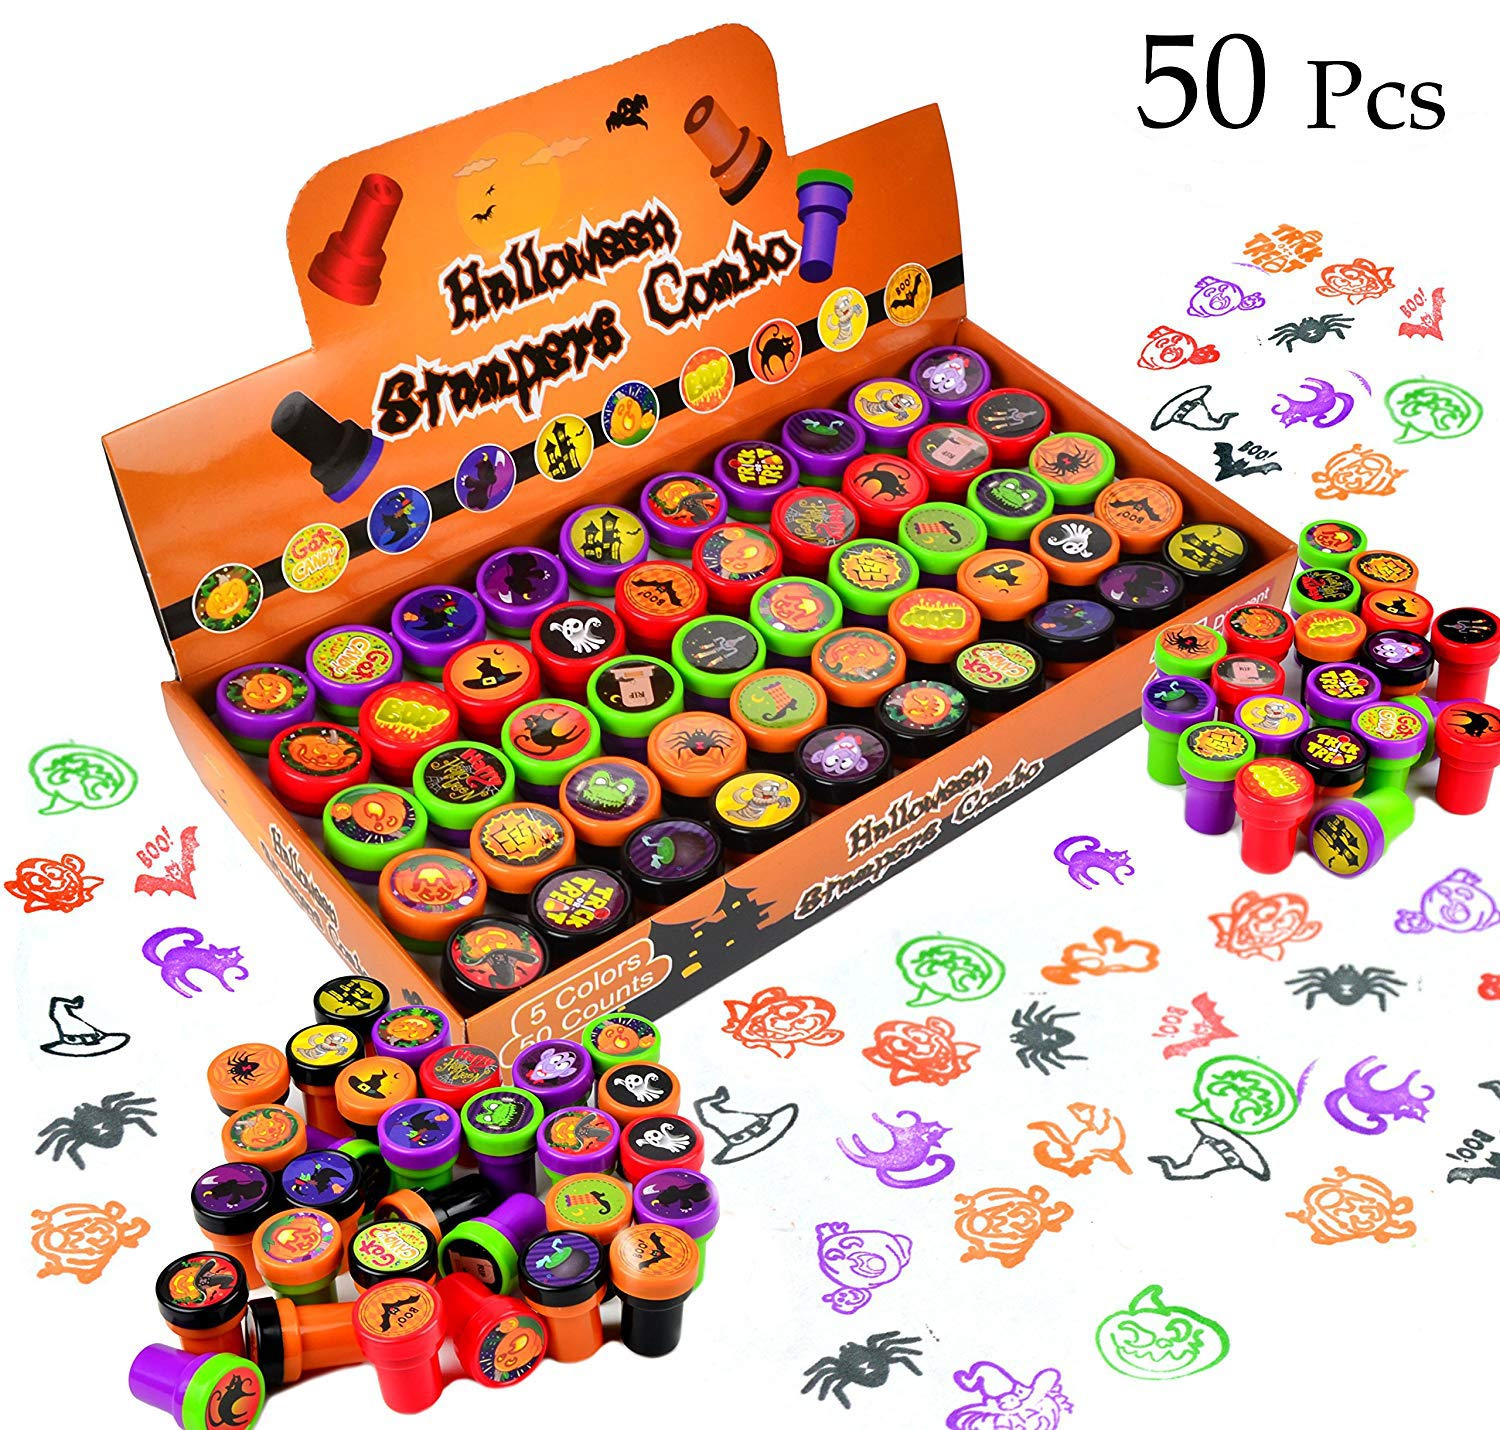 50 Pieces Halloween Assorted Stamps Kids Self-Ink Stamps (25 DIFFERENT Designs, Plastic Stamps, Trick Or Treat Stamps, Spooky Stamps) for Halloween Party Favors, Game Prizes, Halloween Goodies Bags Joyin Inc